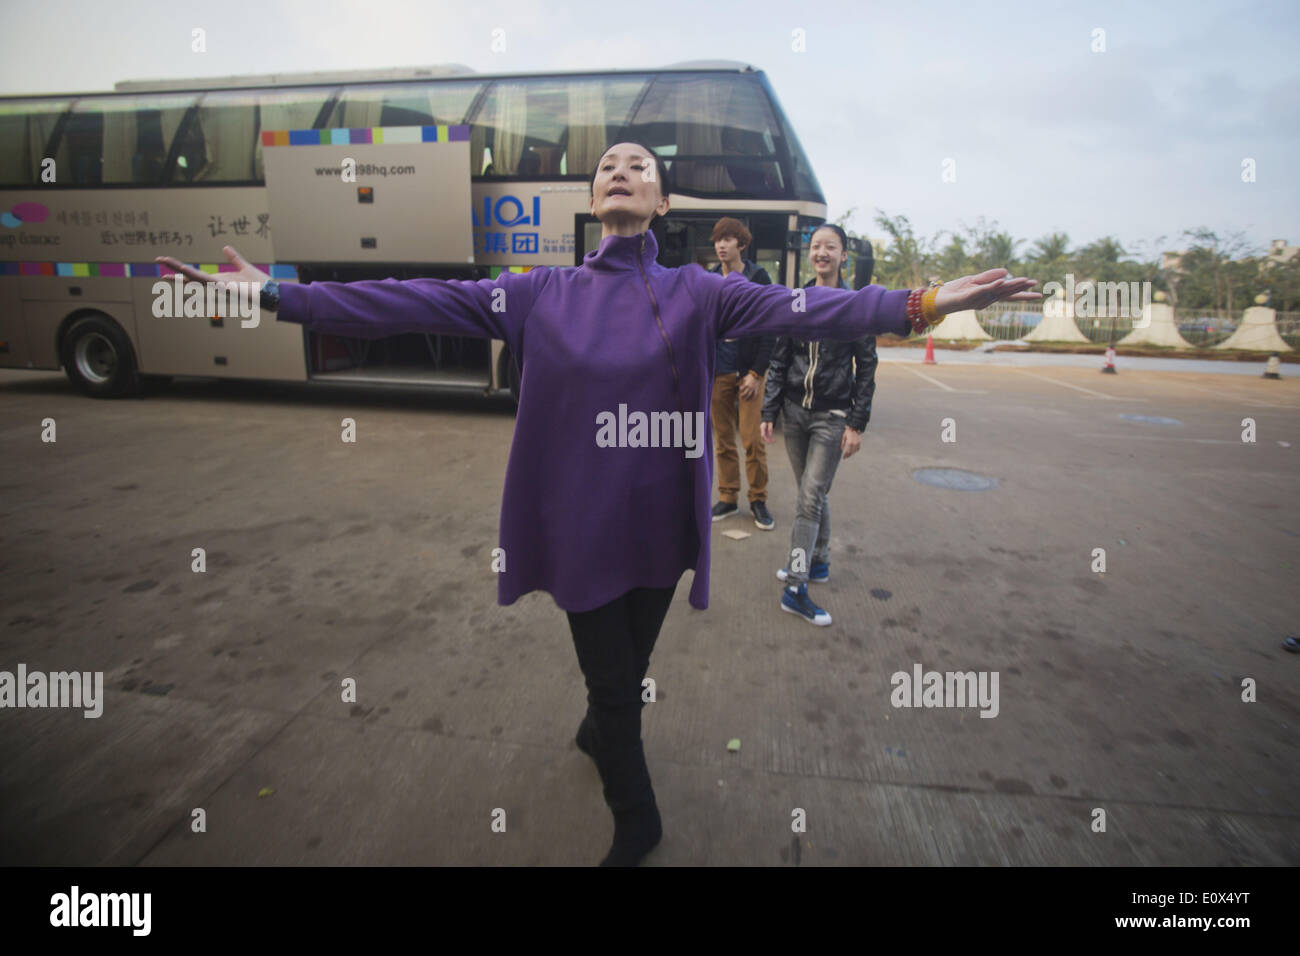 (140520) -- BEIJING, May 20, 2014 (Xinhua) -- Feng Ying, 52-year-old director of the National Ballet of China, demonstrates routines for dancers while they wait for their luggage loaded at Haikou Meilan Airport in Haikou, south China's Hainan Province, Jan. 11, 2014. Before being able to present perfect performance in the spotlight, every member of the National Ballet of China has to undergo severe arduous training for years. Yet they chose to persevere in what they truely love. Years of toiling not only allows them good body shape, expertise and disposition, but also offers them a life-long g - Stock Image